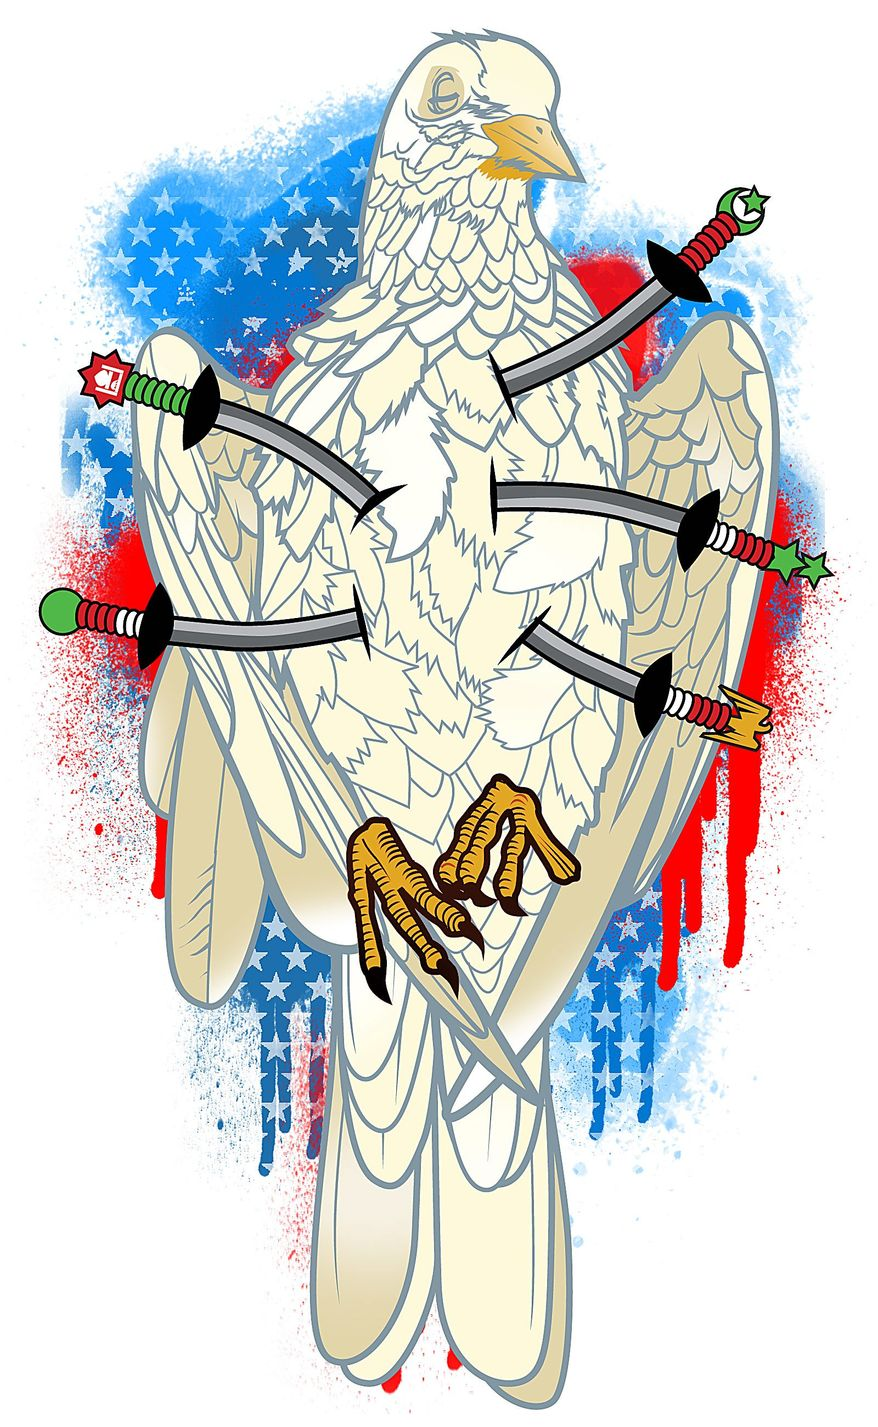 Illustration on the collapse of peace in Iraq by Linas Garsys/The Washington Times